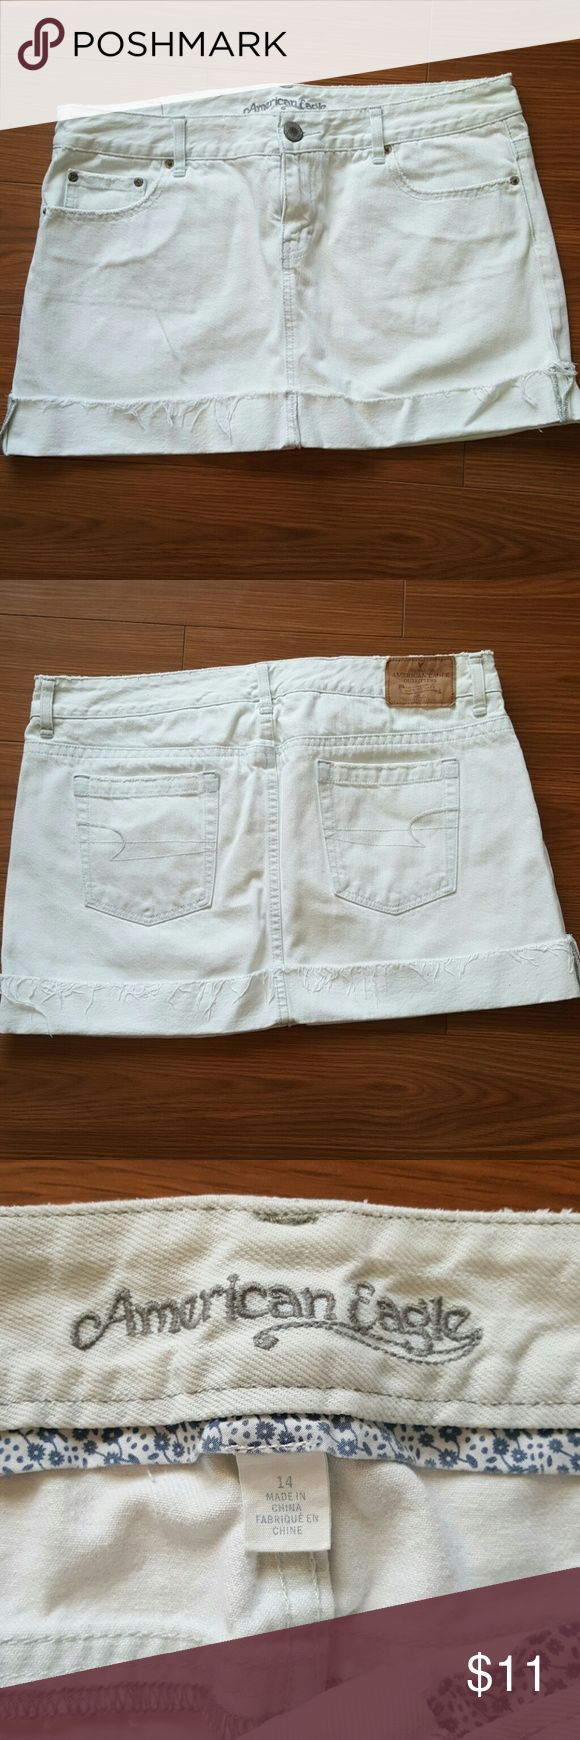 American Eagle Skirt White denim skirt size 14.  In great condition! American Eagle Outfitters Skirts Mini